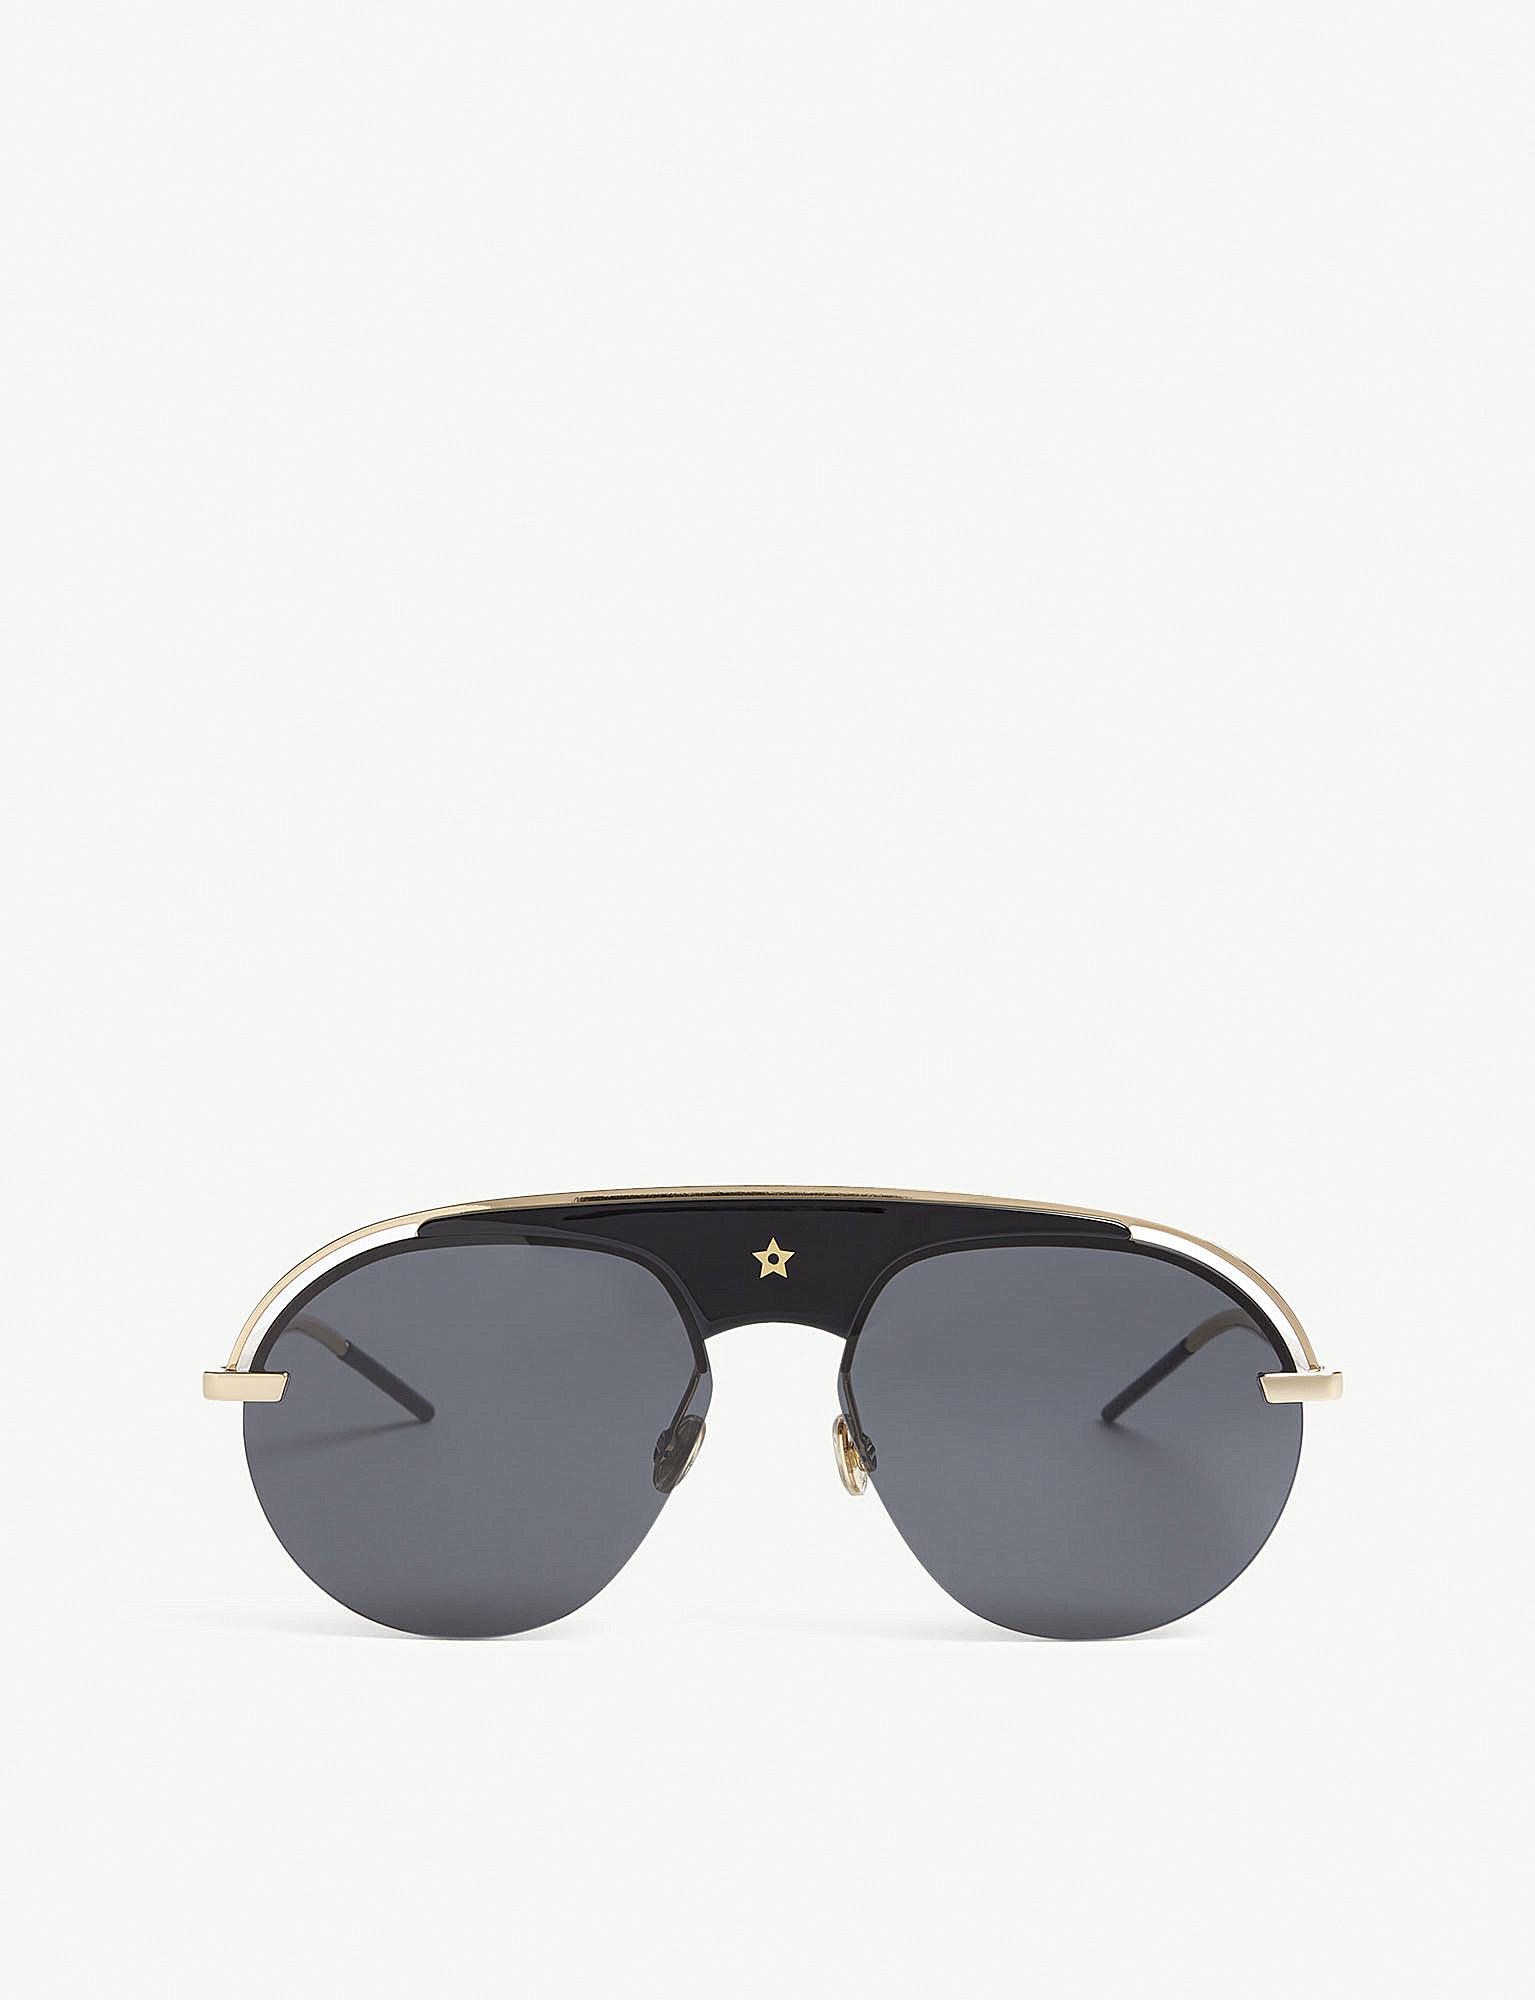 072ee7fd50f Dior Dio(r)evolution Pilot-frame Sunglasses in Black - Lyst